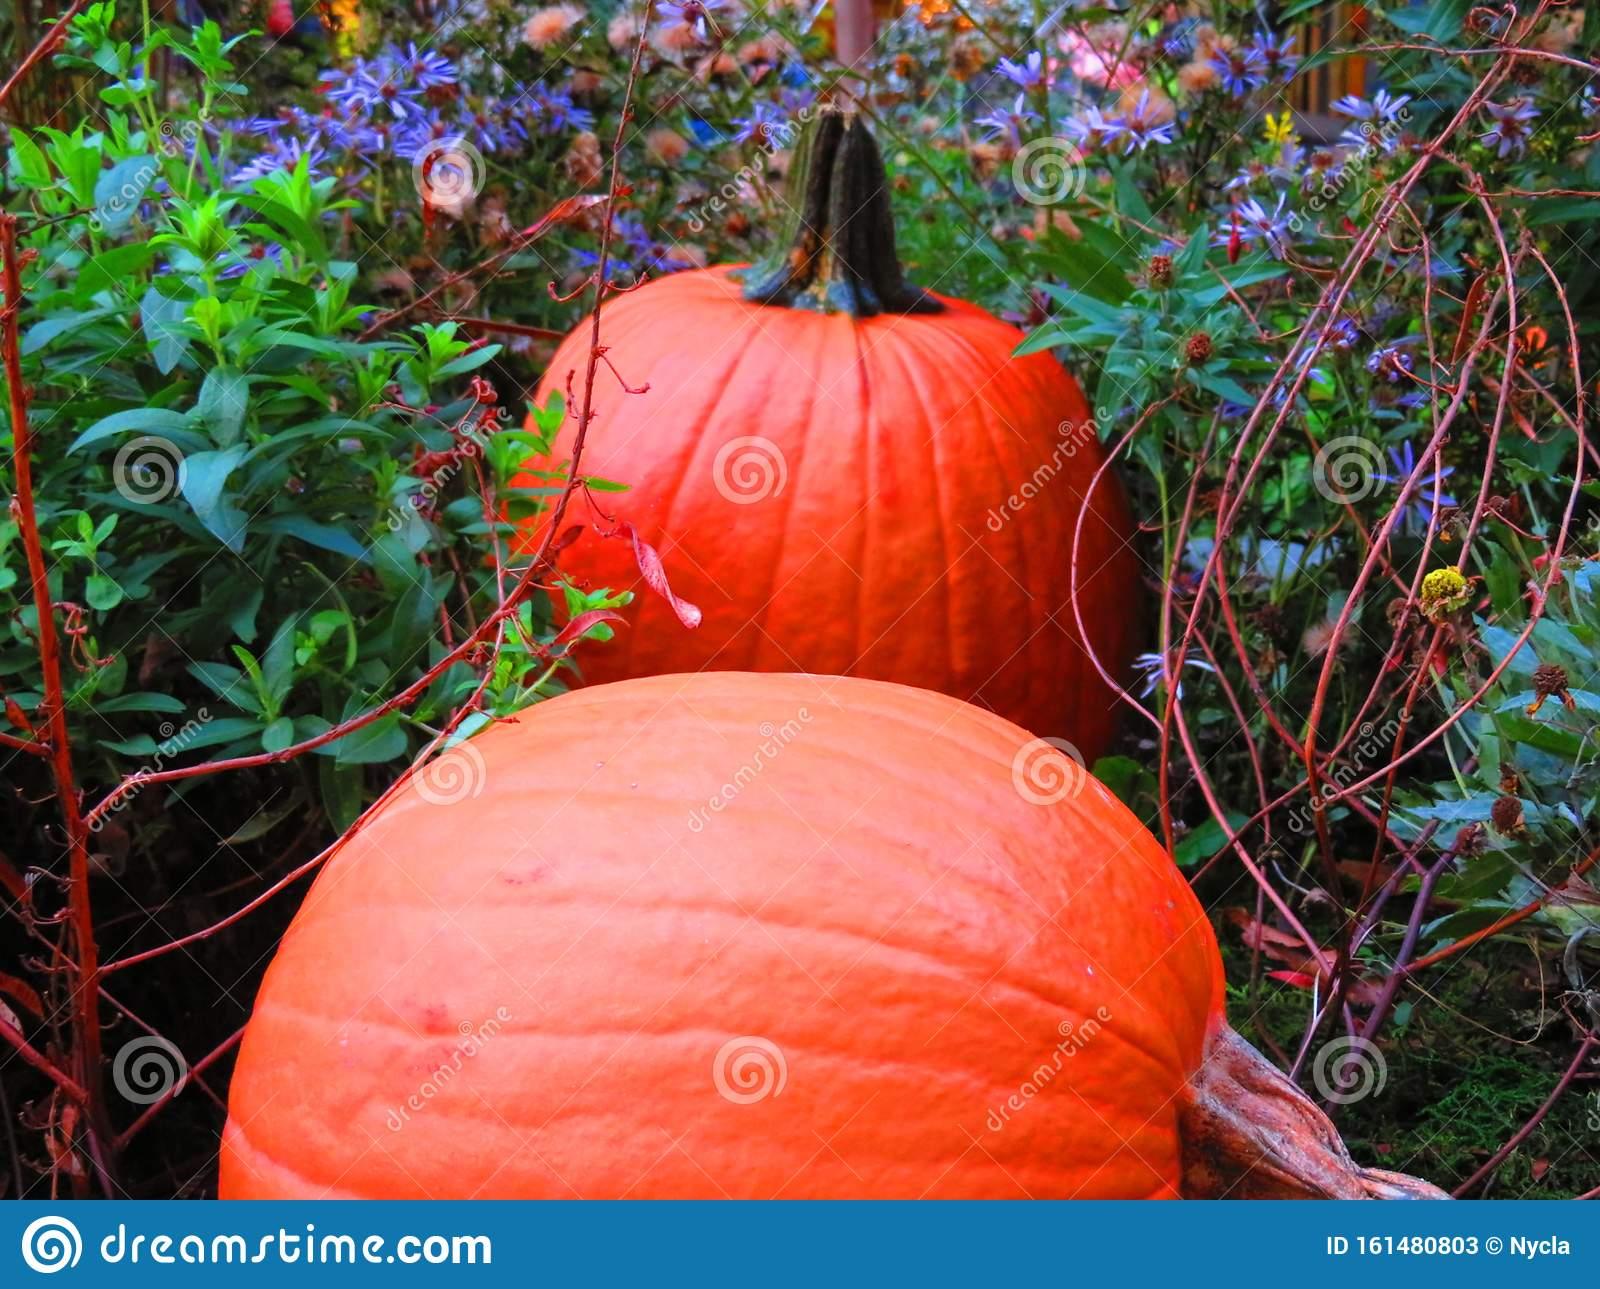 Vivid Pumpkin Patch Stock Image. Image Of Leaves, Grass